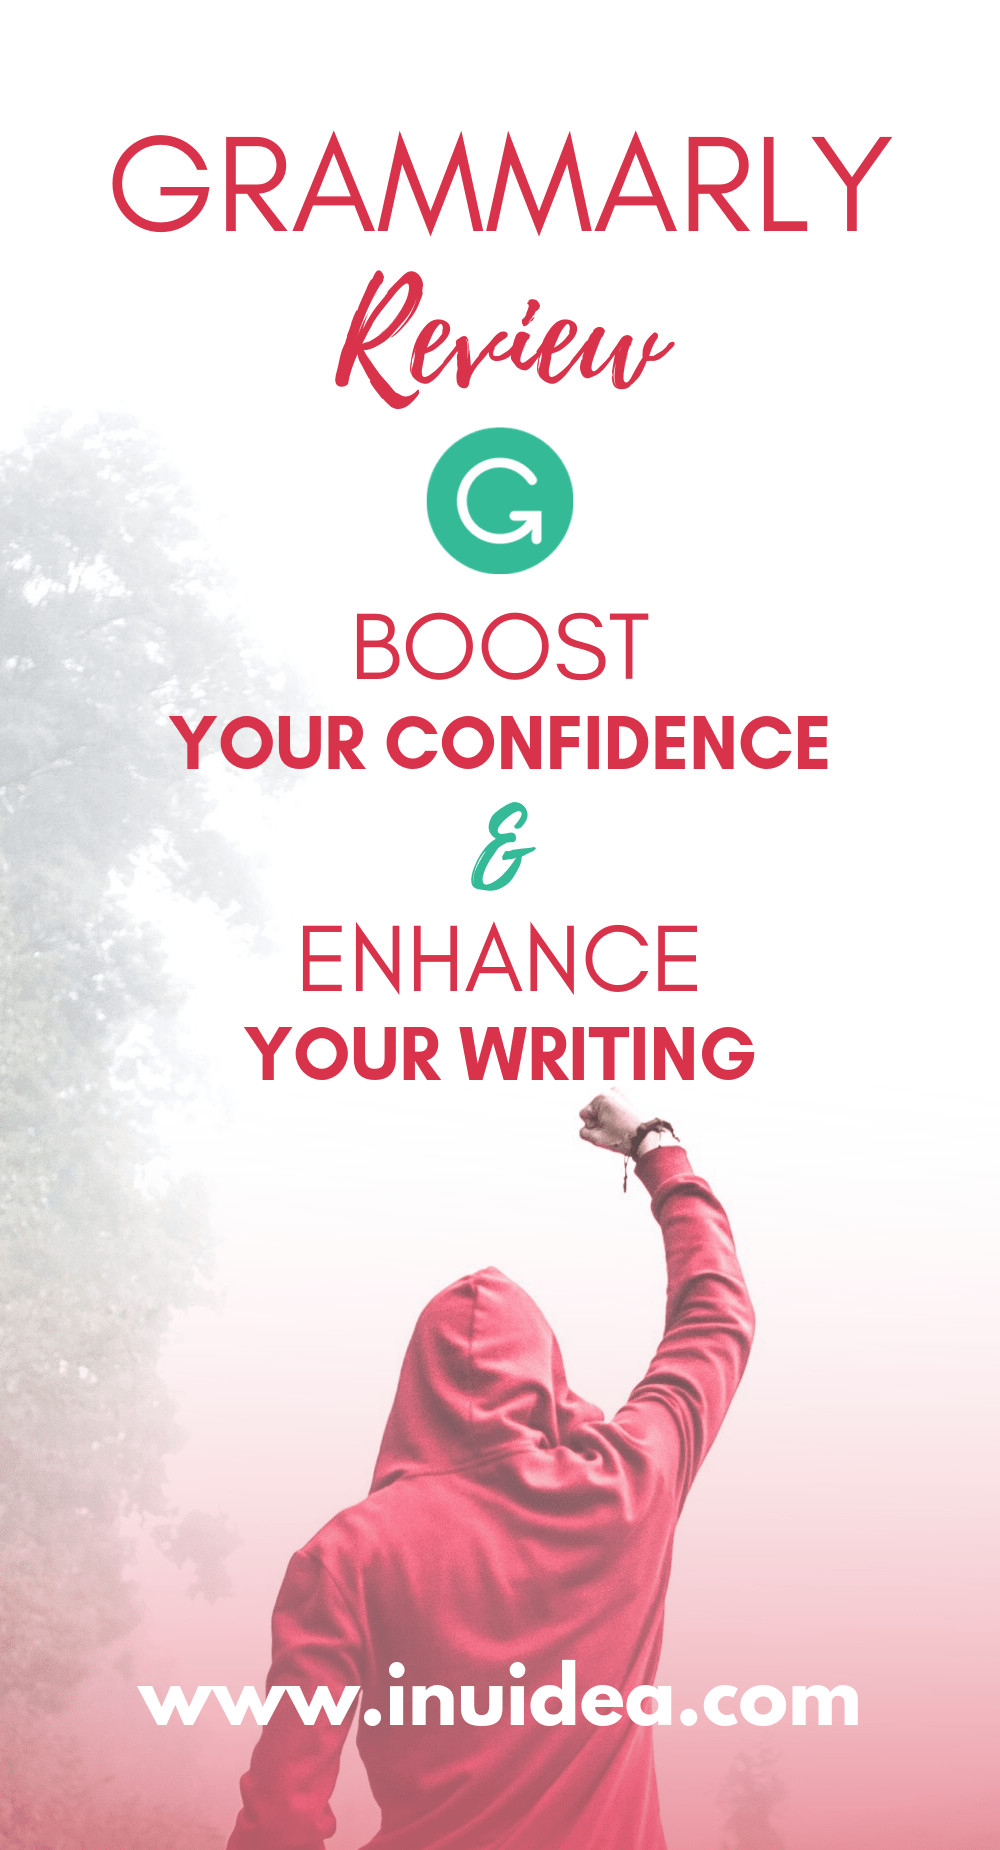 Grammarly Proofreading Software Deals Today Stores April 2020